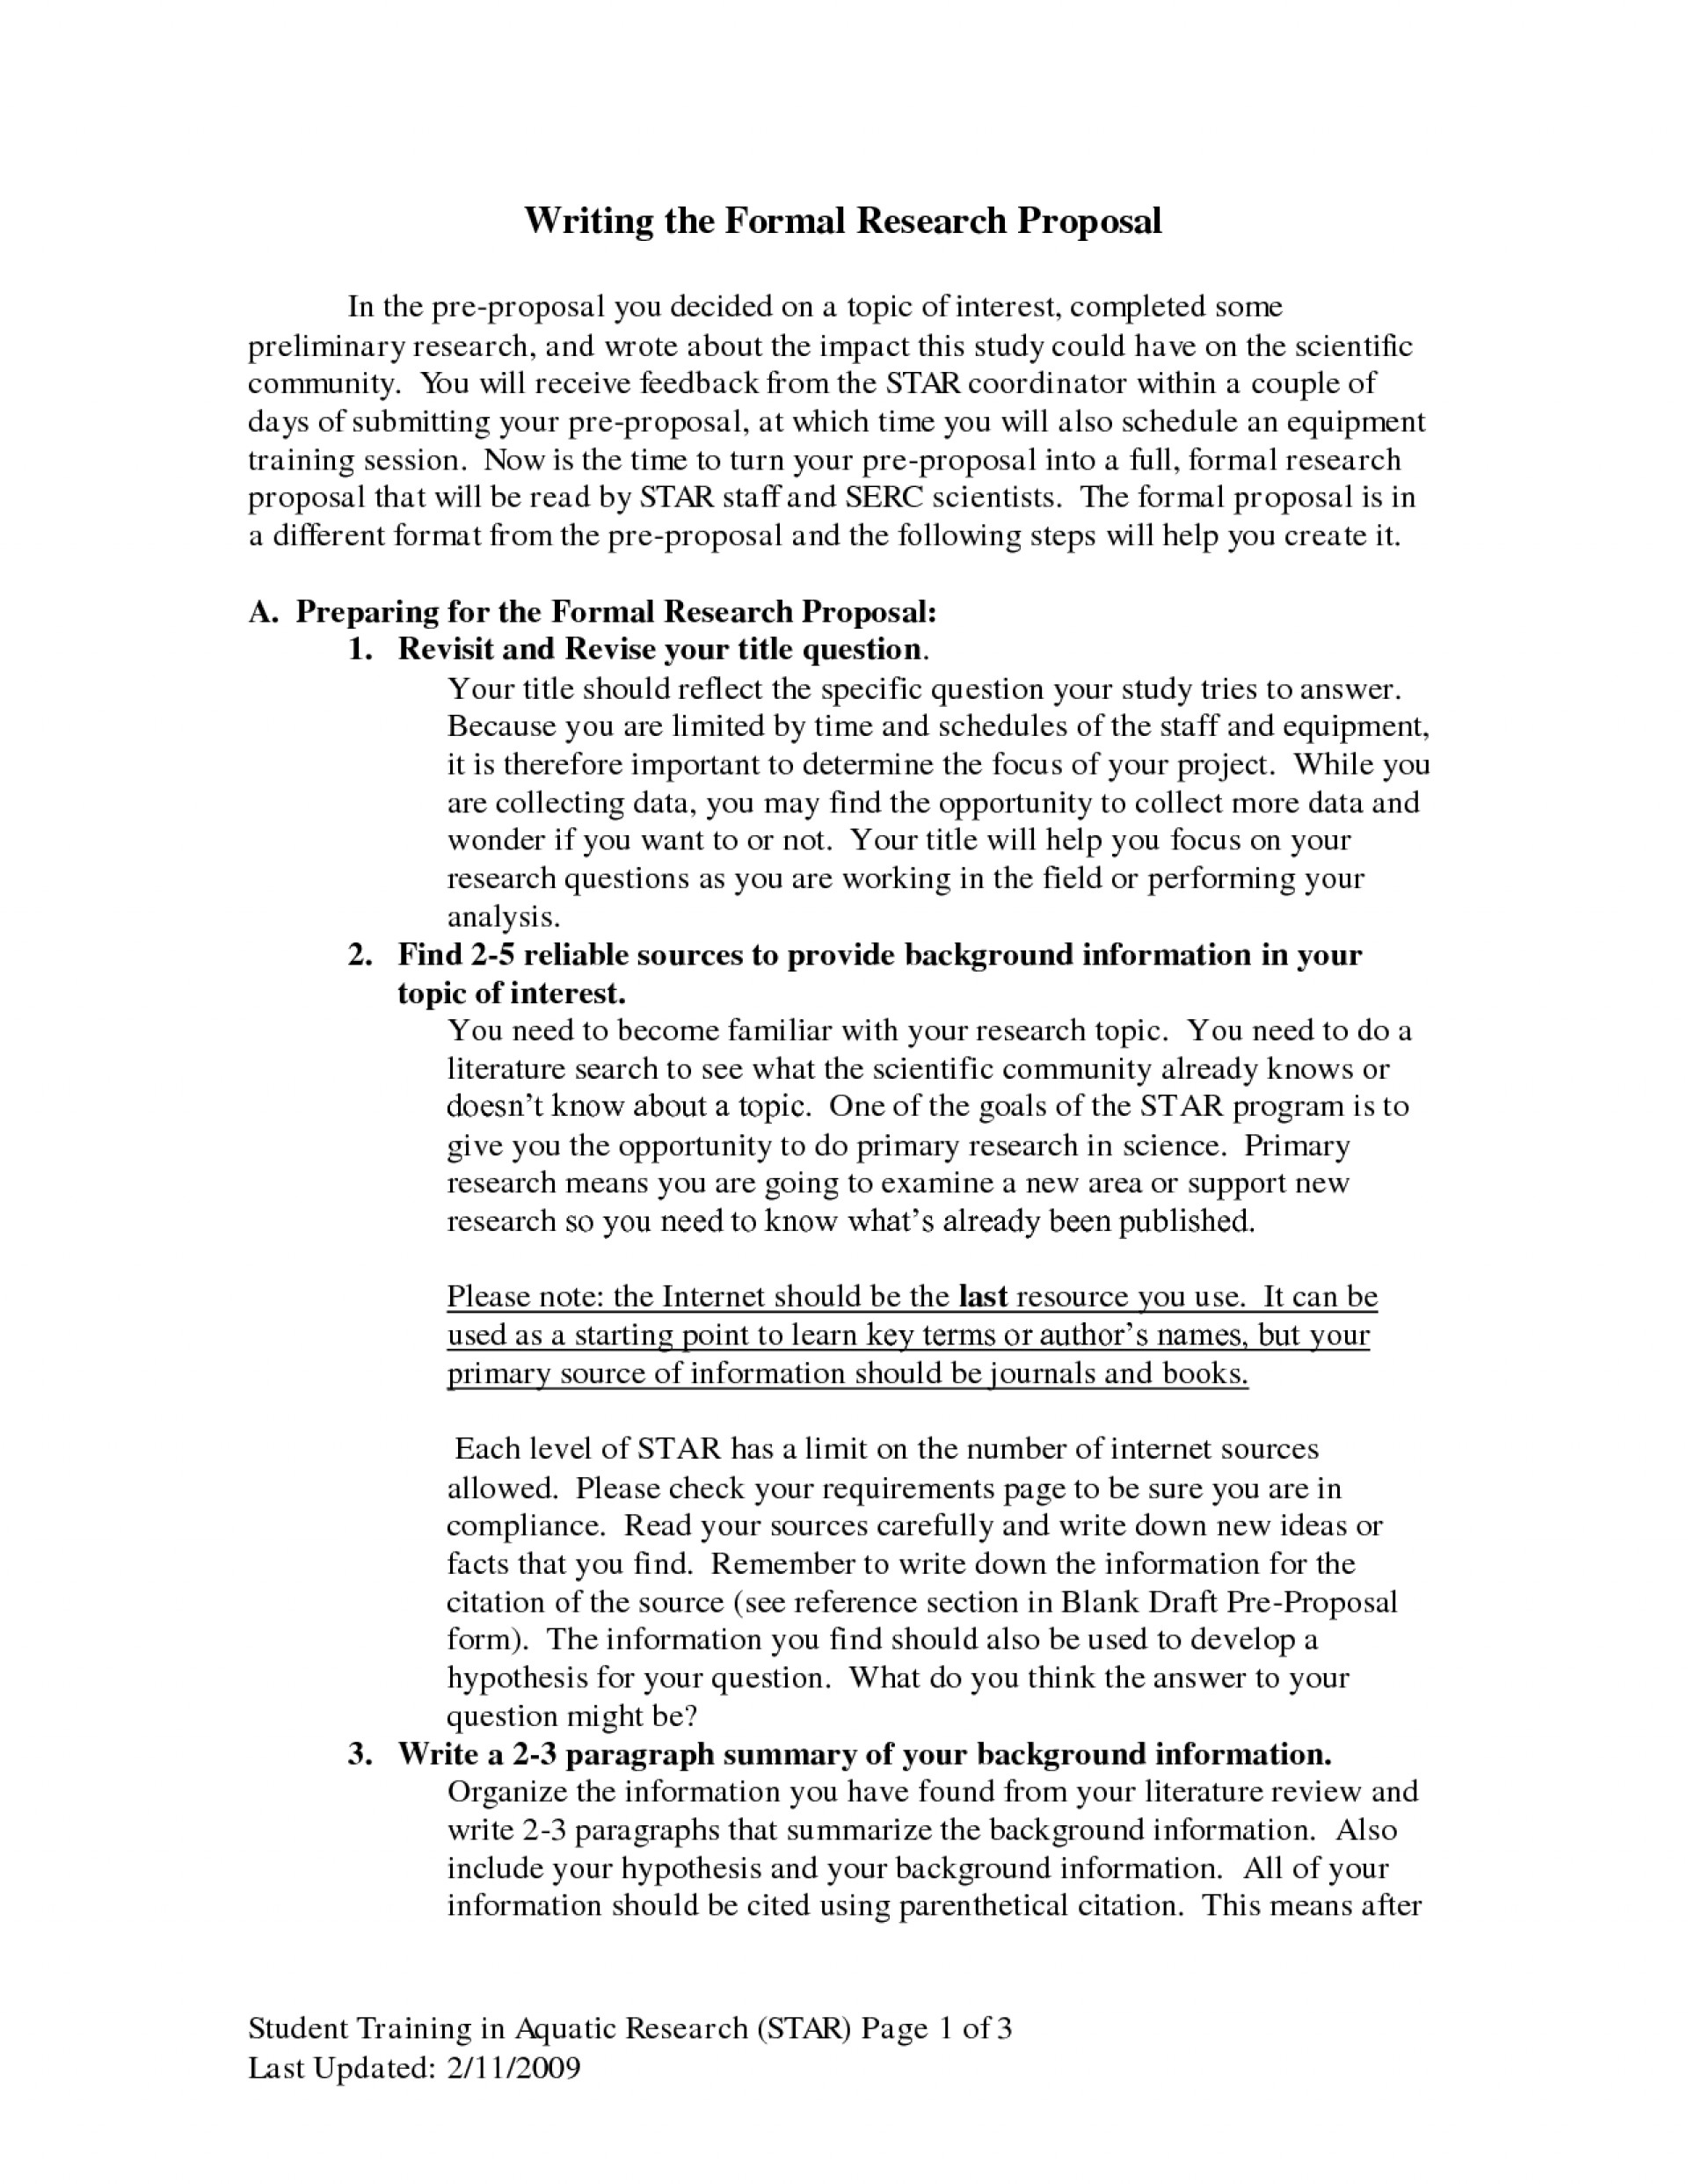 003 Research Paper Best Topics Ideas Of Essay Apa Perfect Sample Science Magnificent 2017 For Top 1920